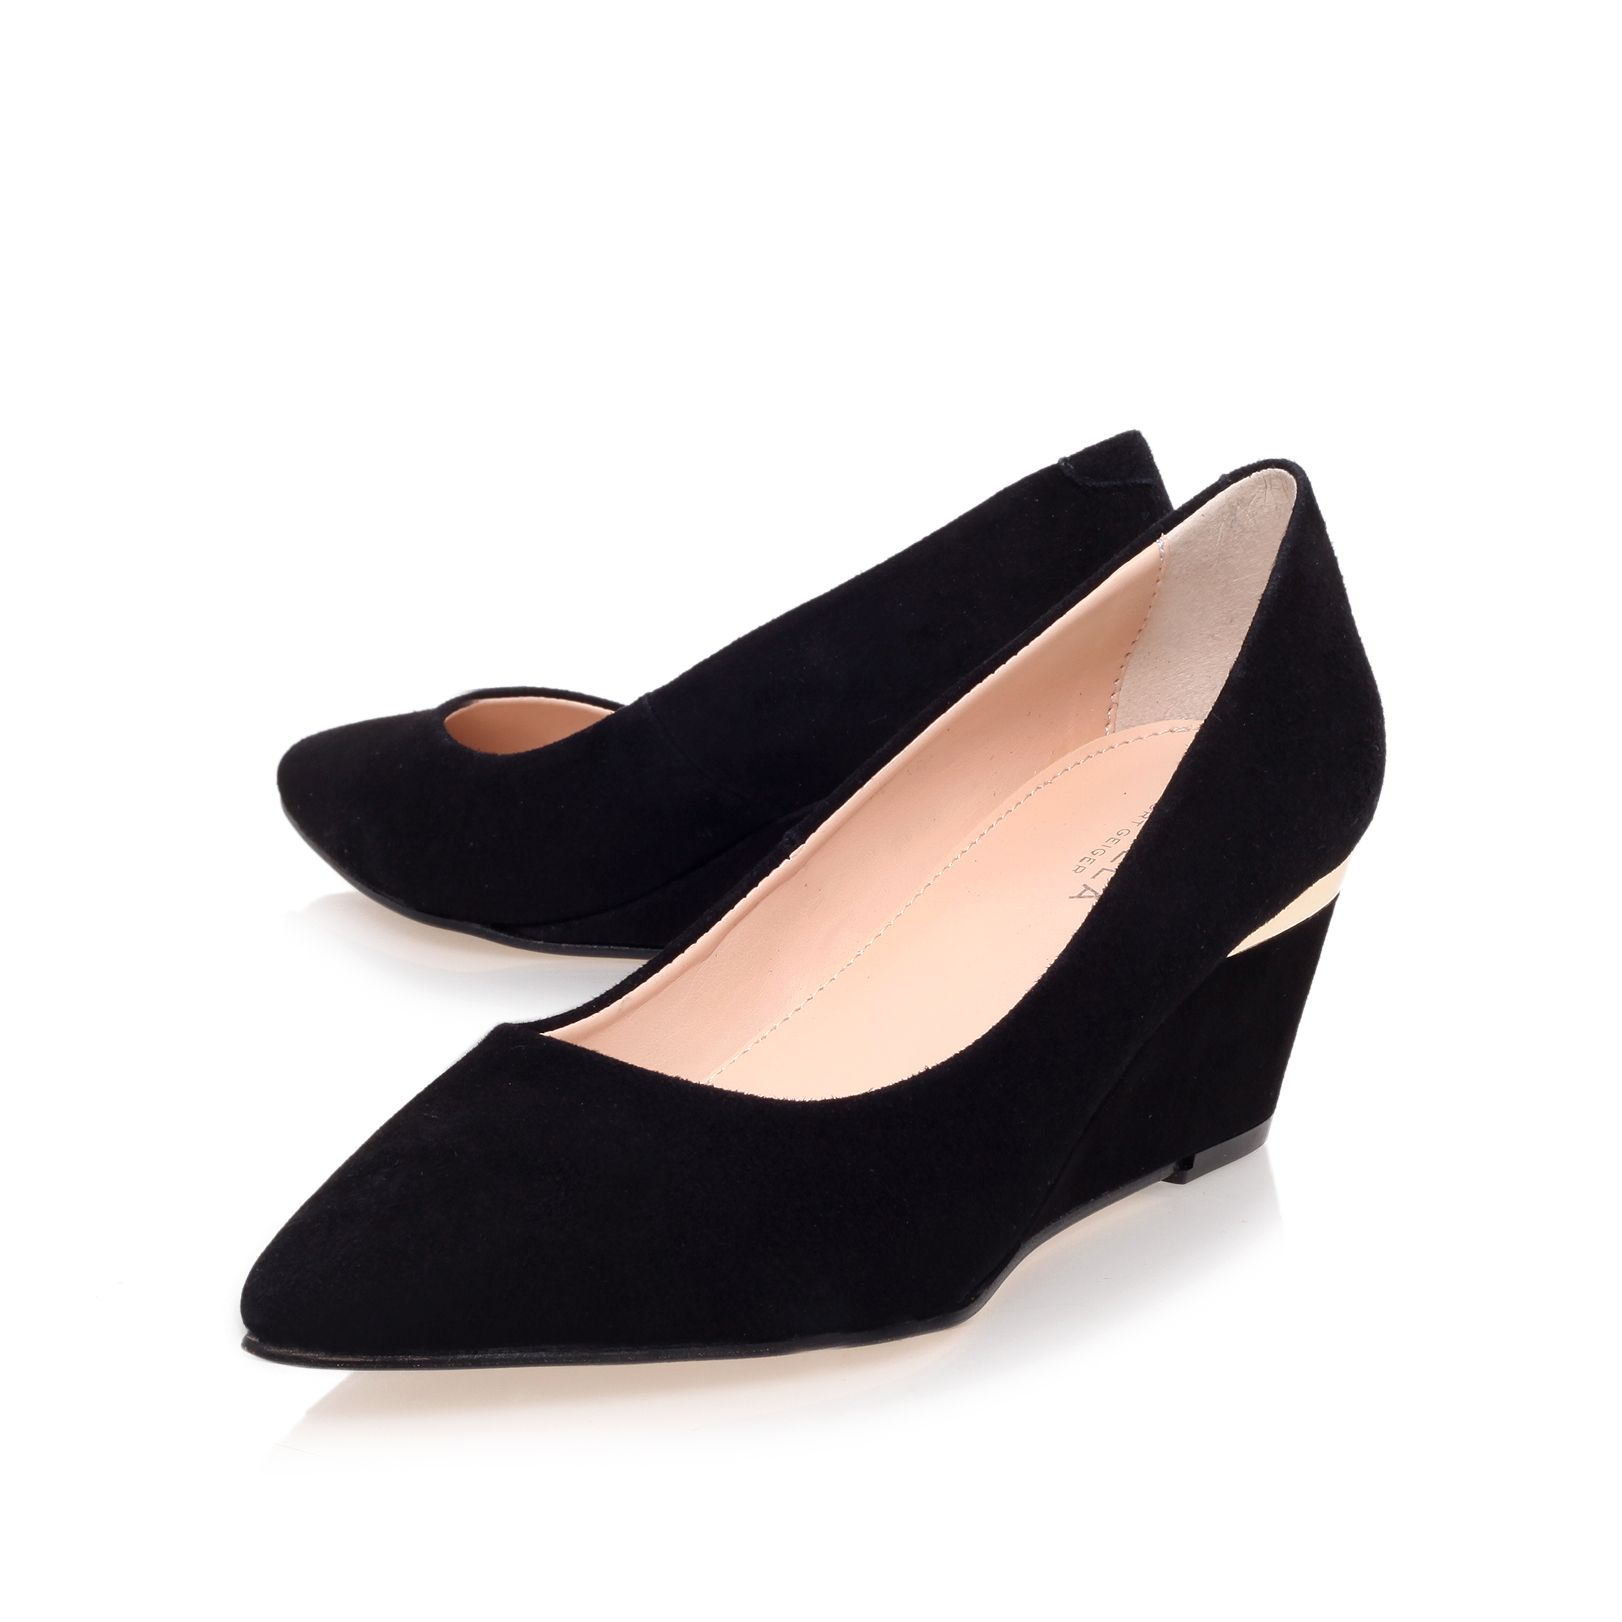 Avenue mid heel wedges